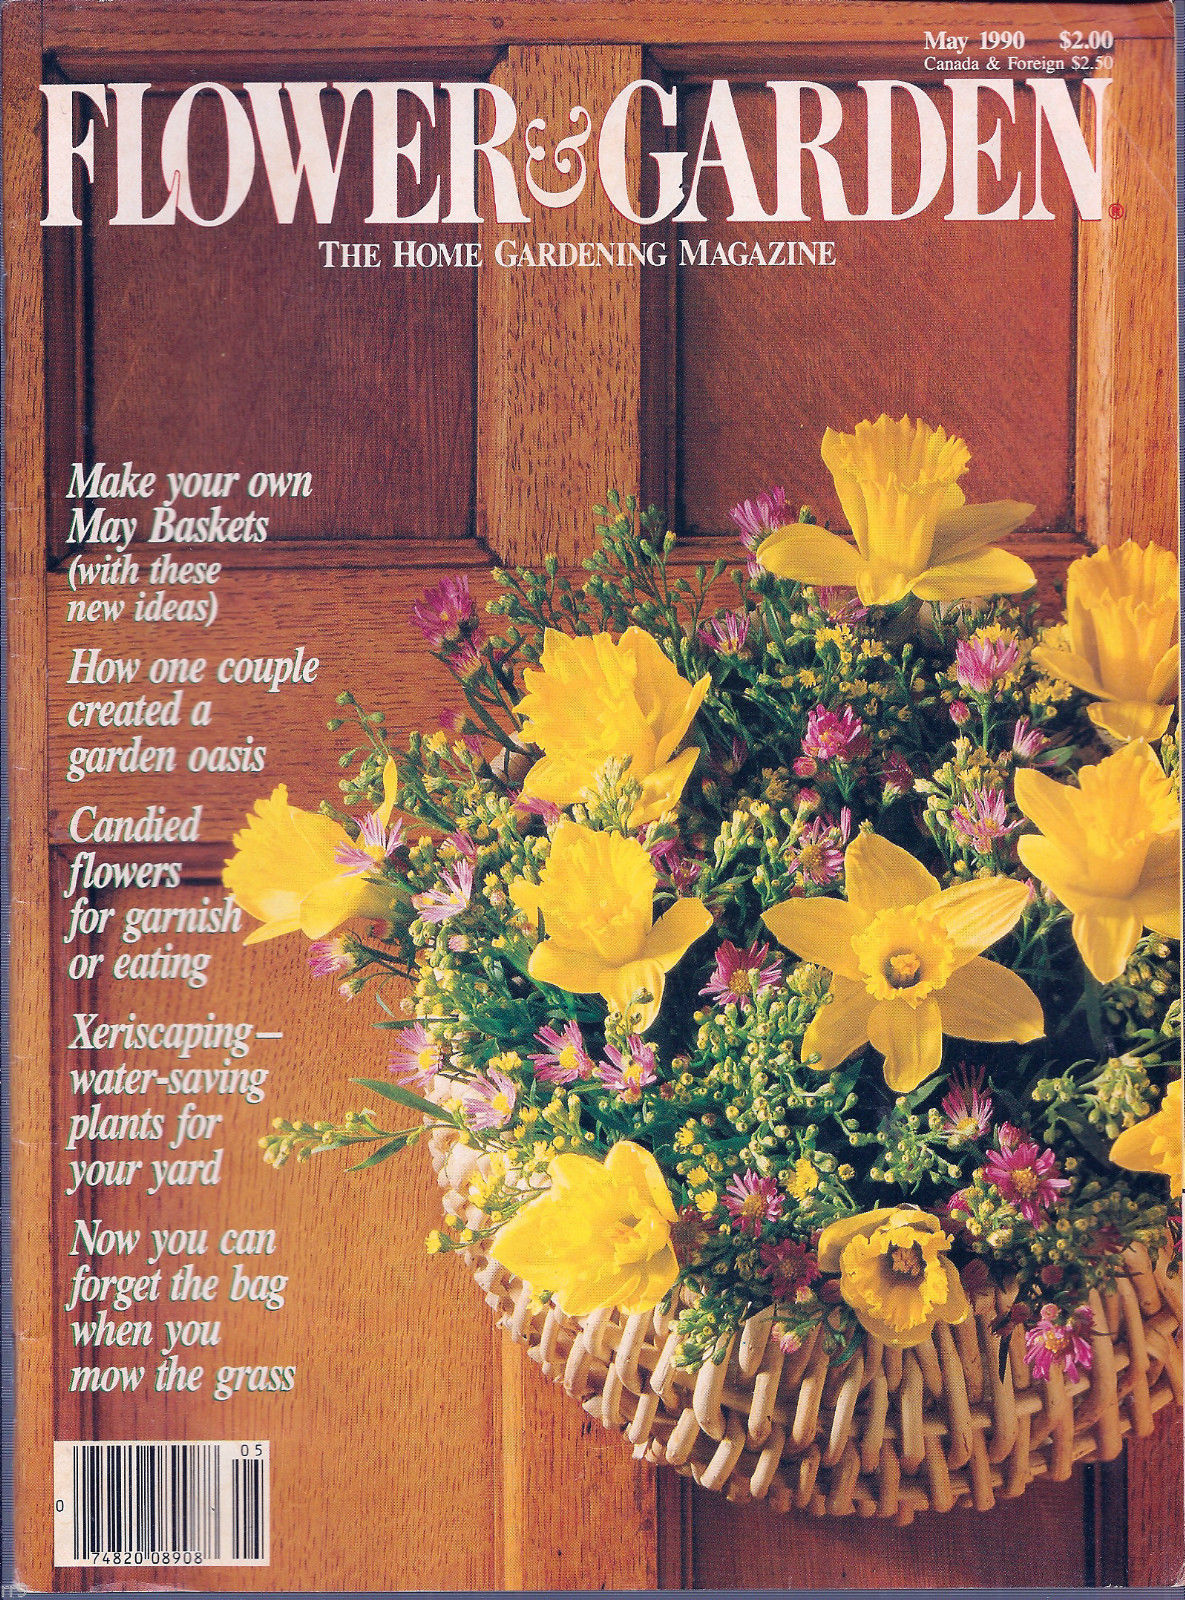 Primary image for Flower & Garden - The Home Gardening Magazine - May 1990